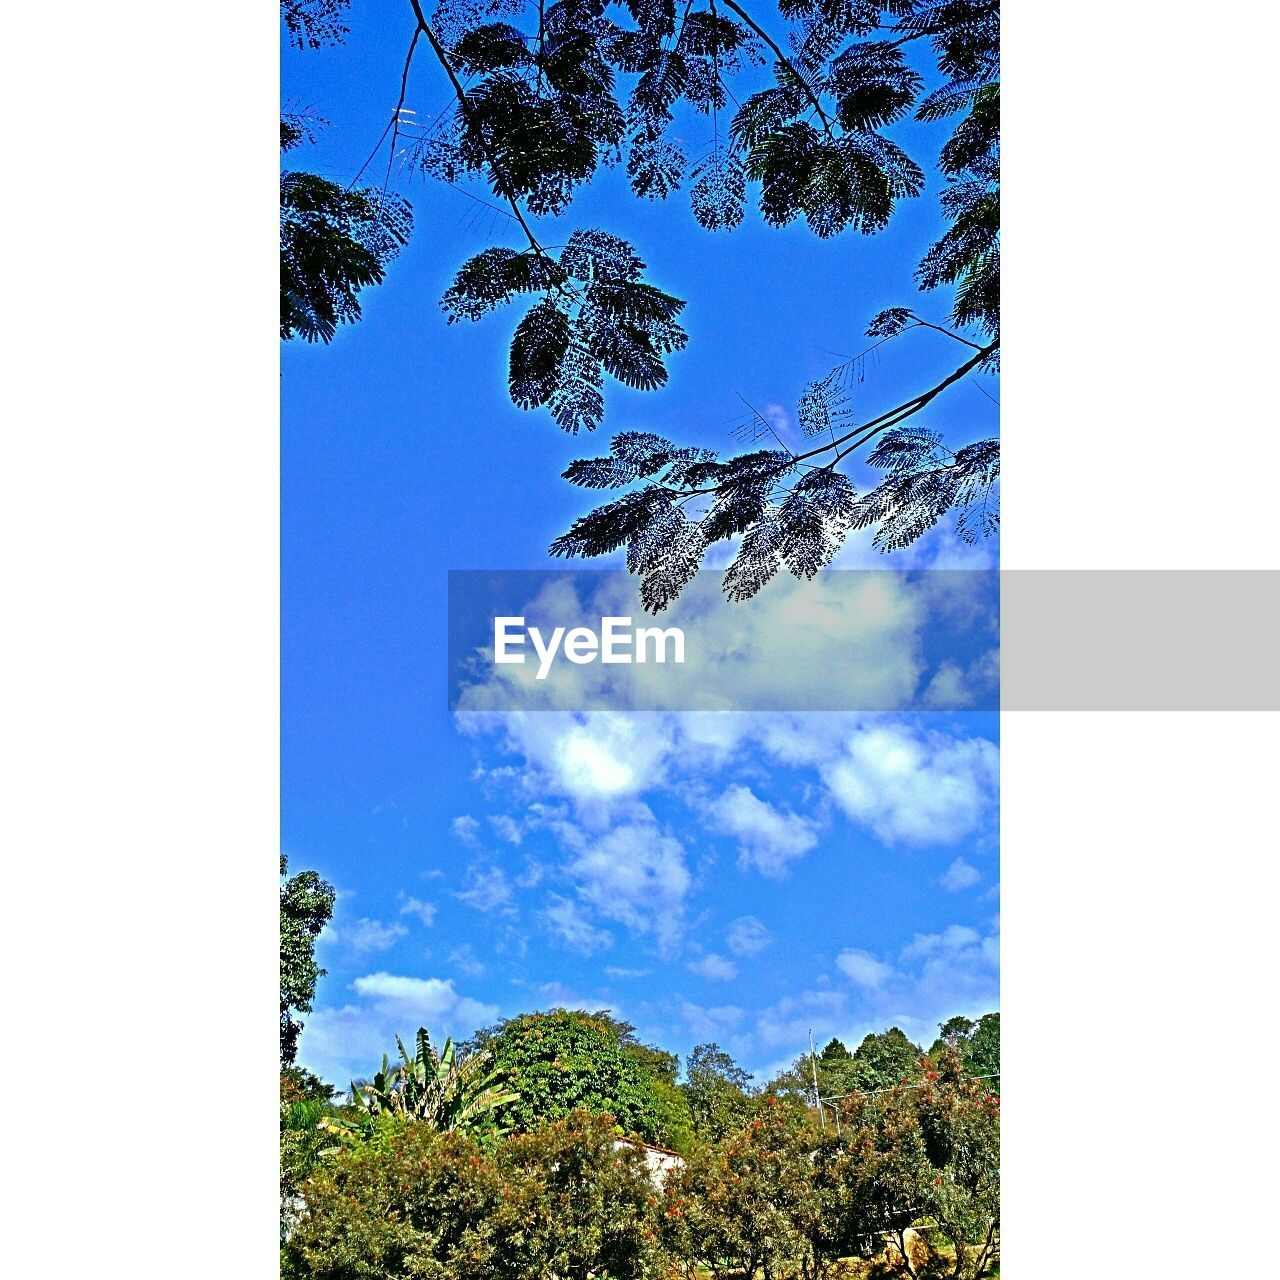 tree, blue, sky, day, nature, no people, low angle view, beauty in nature, growth, outdoors, tree trunk, clear sky, branch